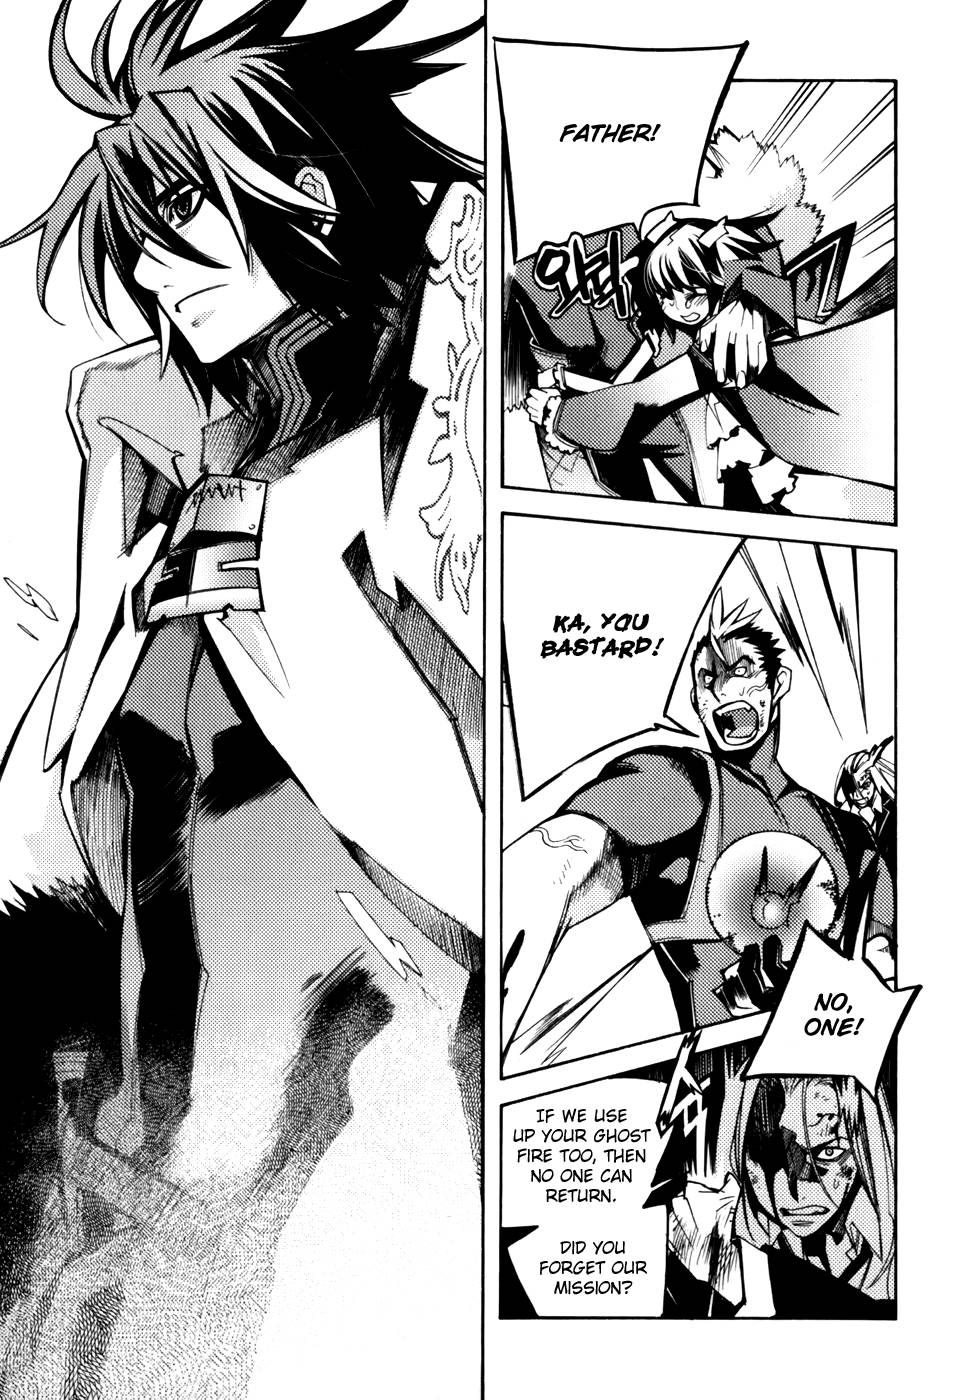 Read Cavalier Of The Abyss Chapter 20